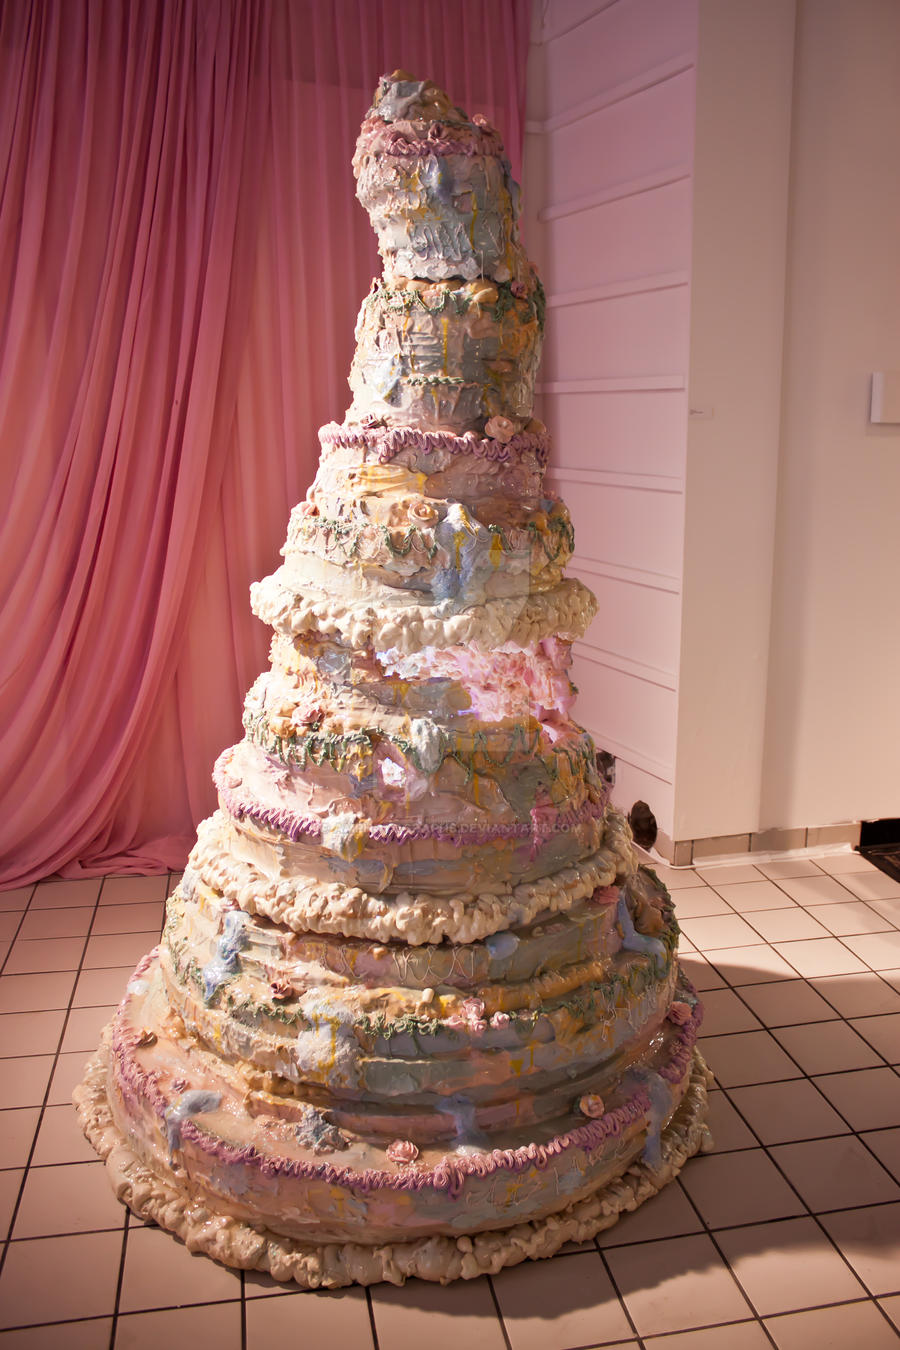 The Biggest Cake In The World By Joy Cowley